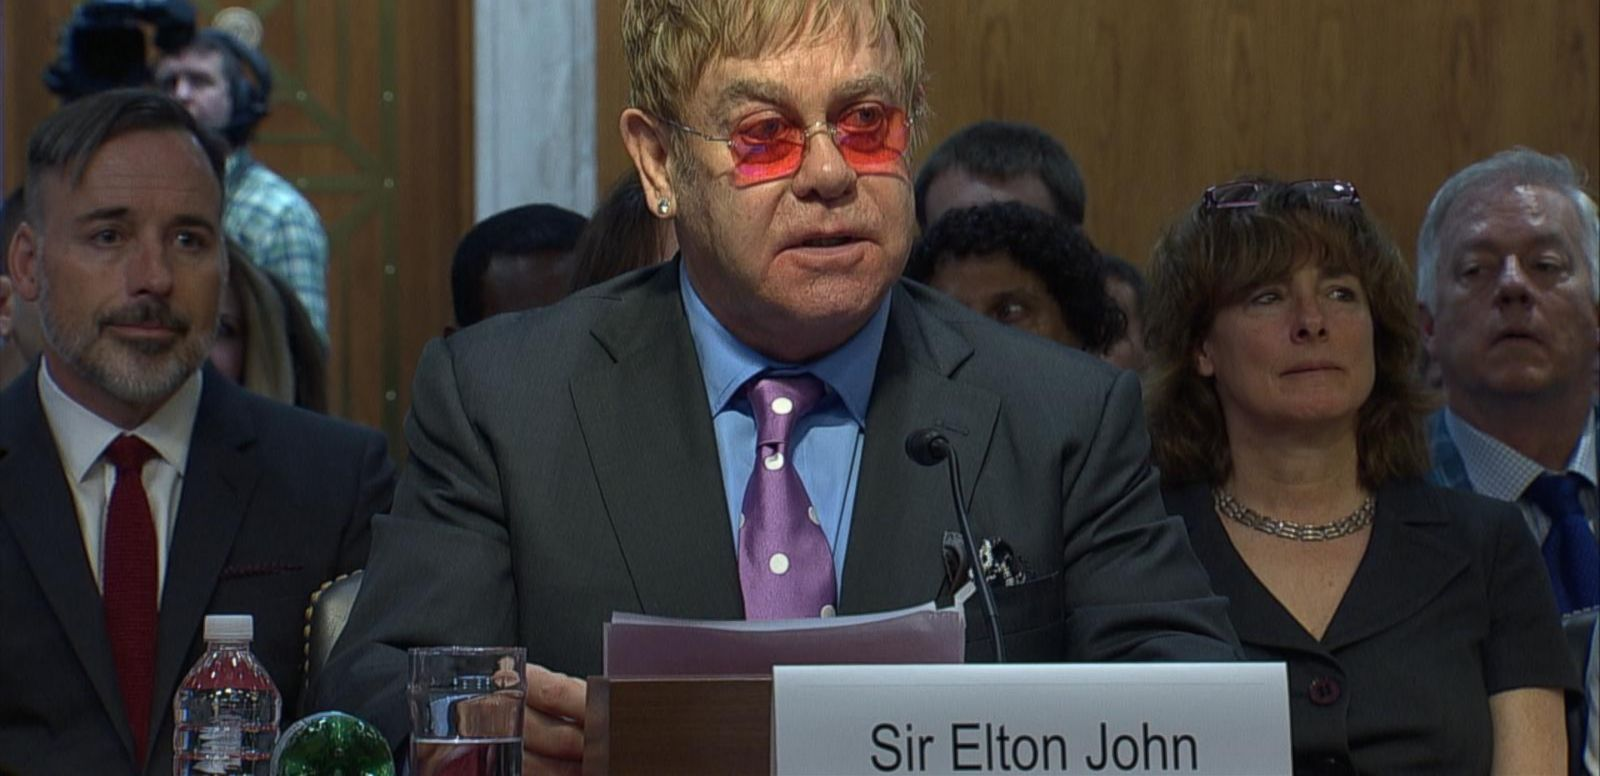 VIDEO: The Rocket Man tells senators he thinks AIDS can be eradicated in his lifetime.